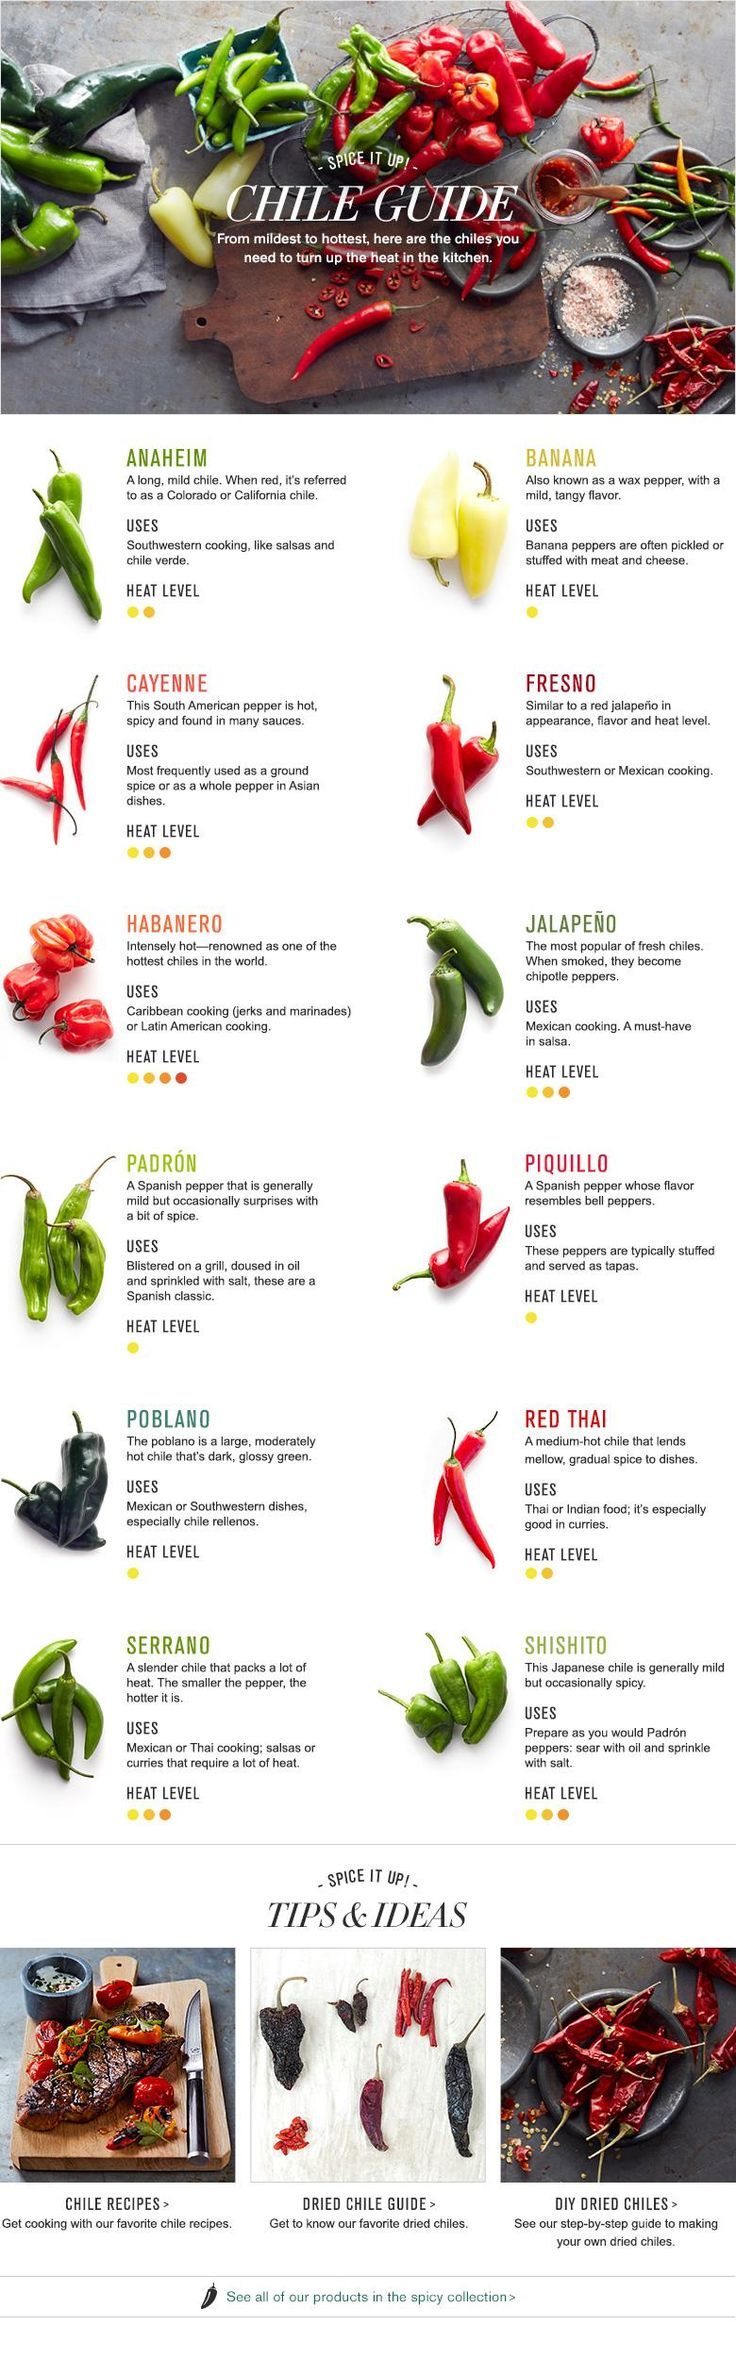 Spice it Up Chili Guide / Williams Sonoma